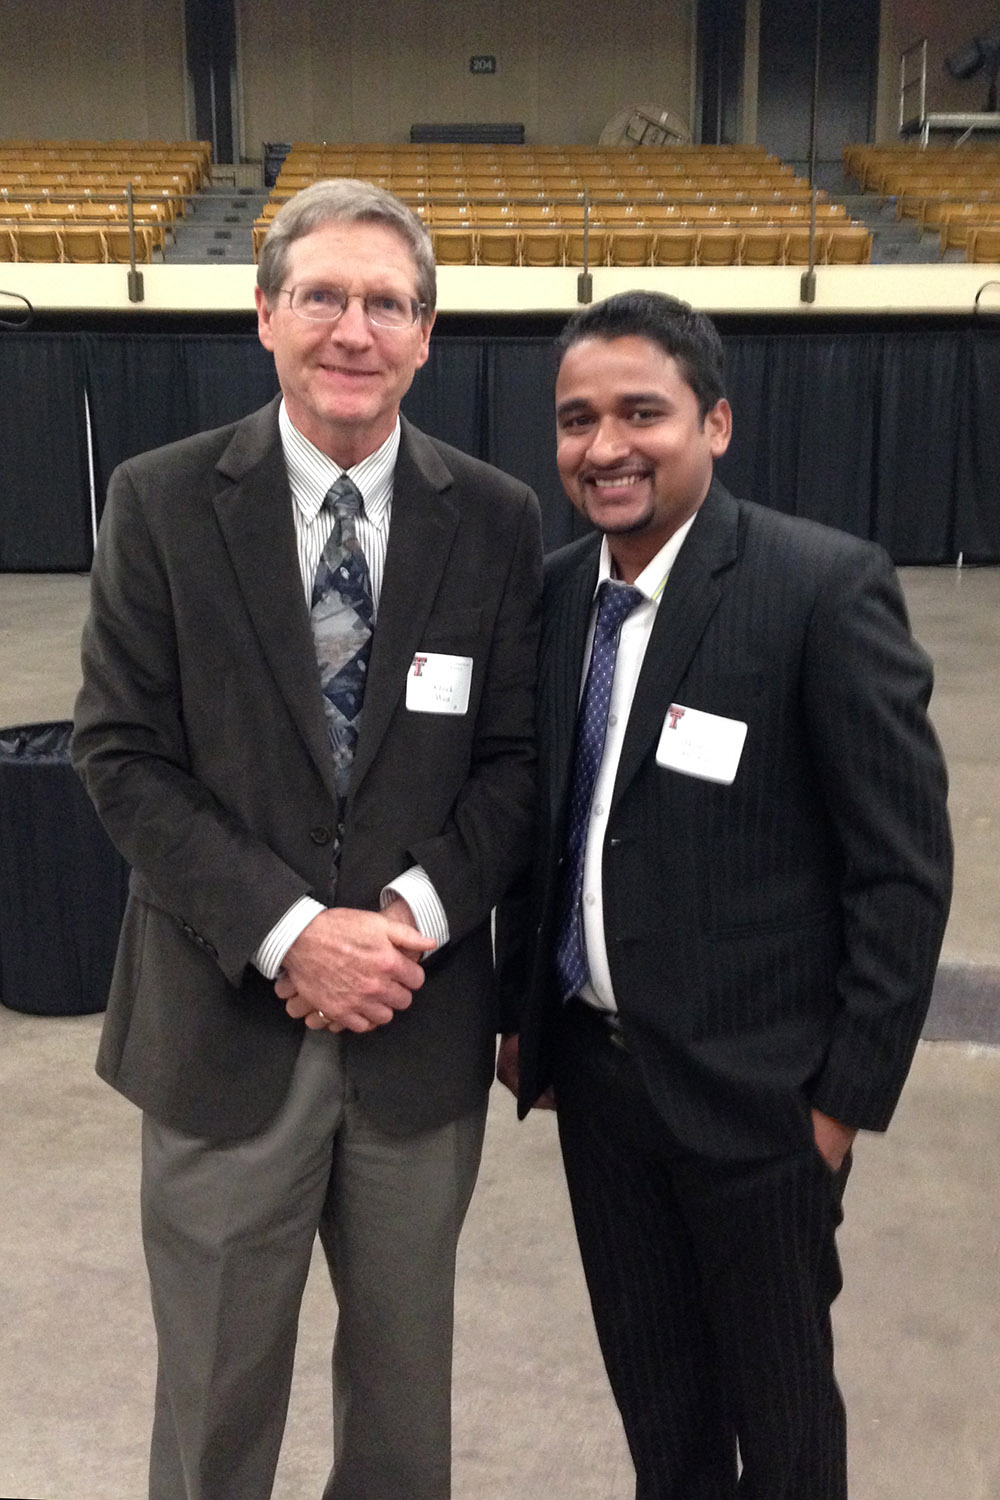 Madhav Dhakal and Texas Tech professor Chuck West